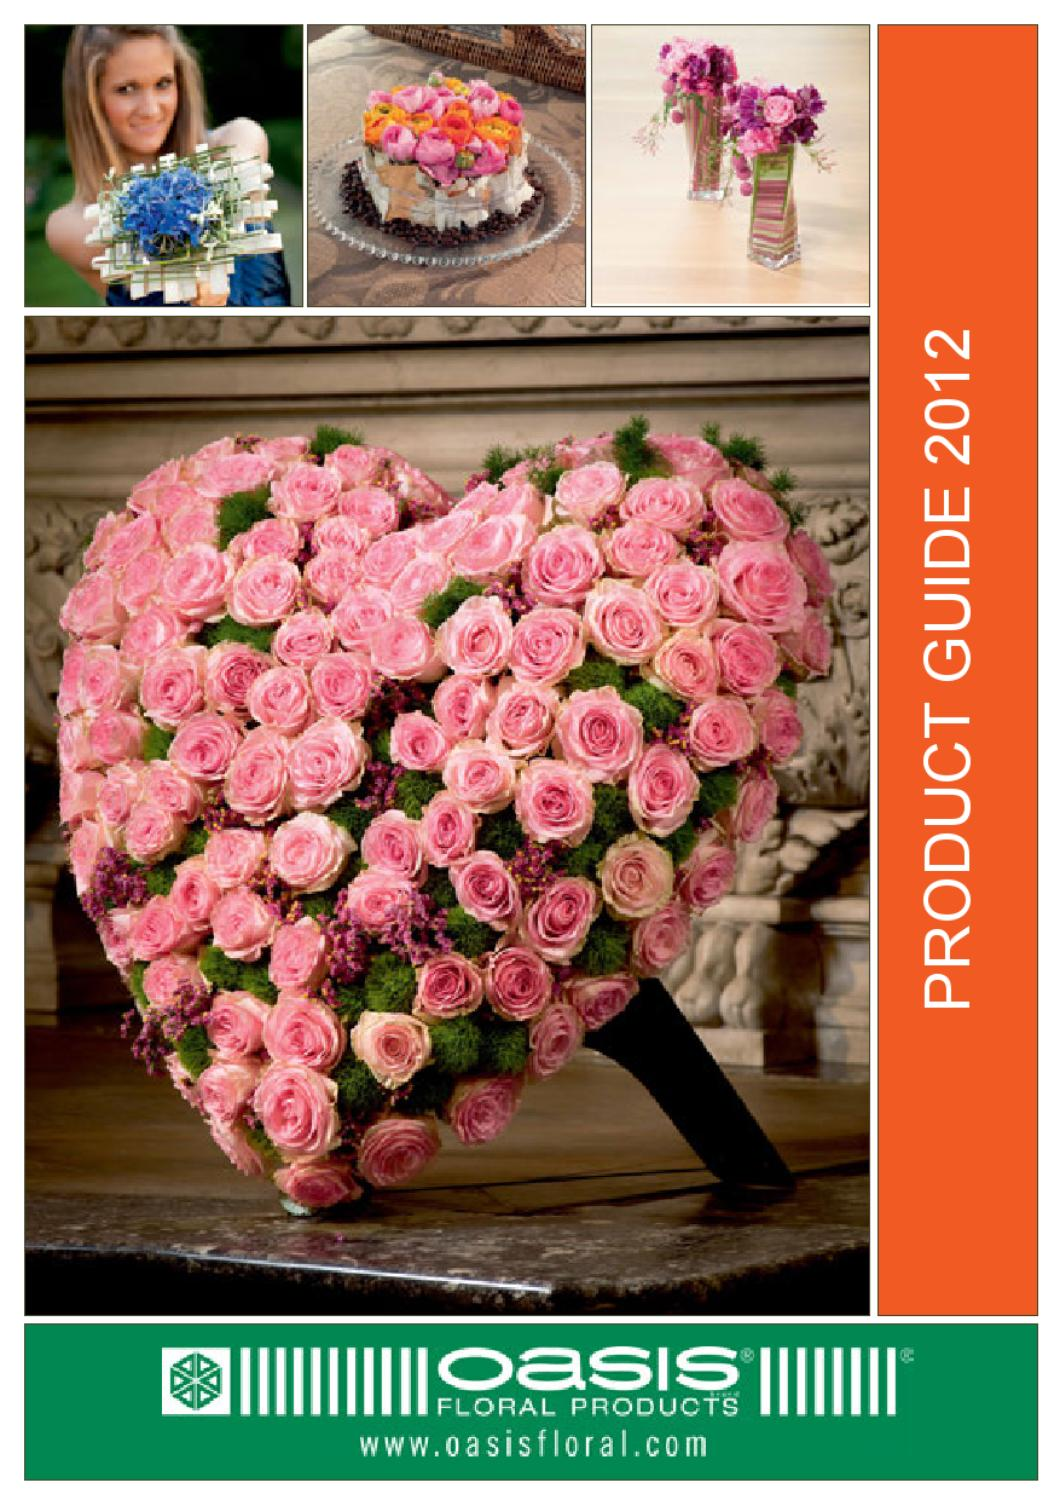 Interflora Toulouse Product Guide 2012